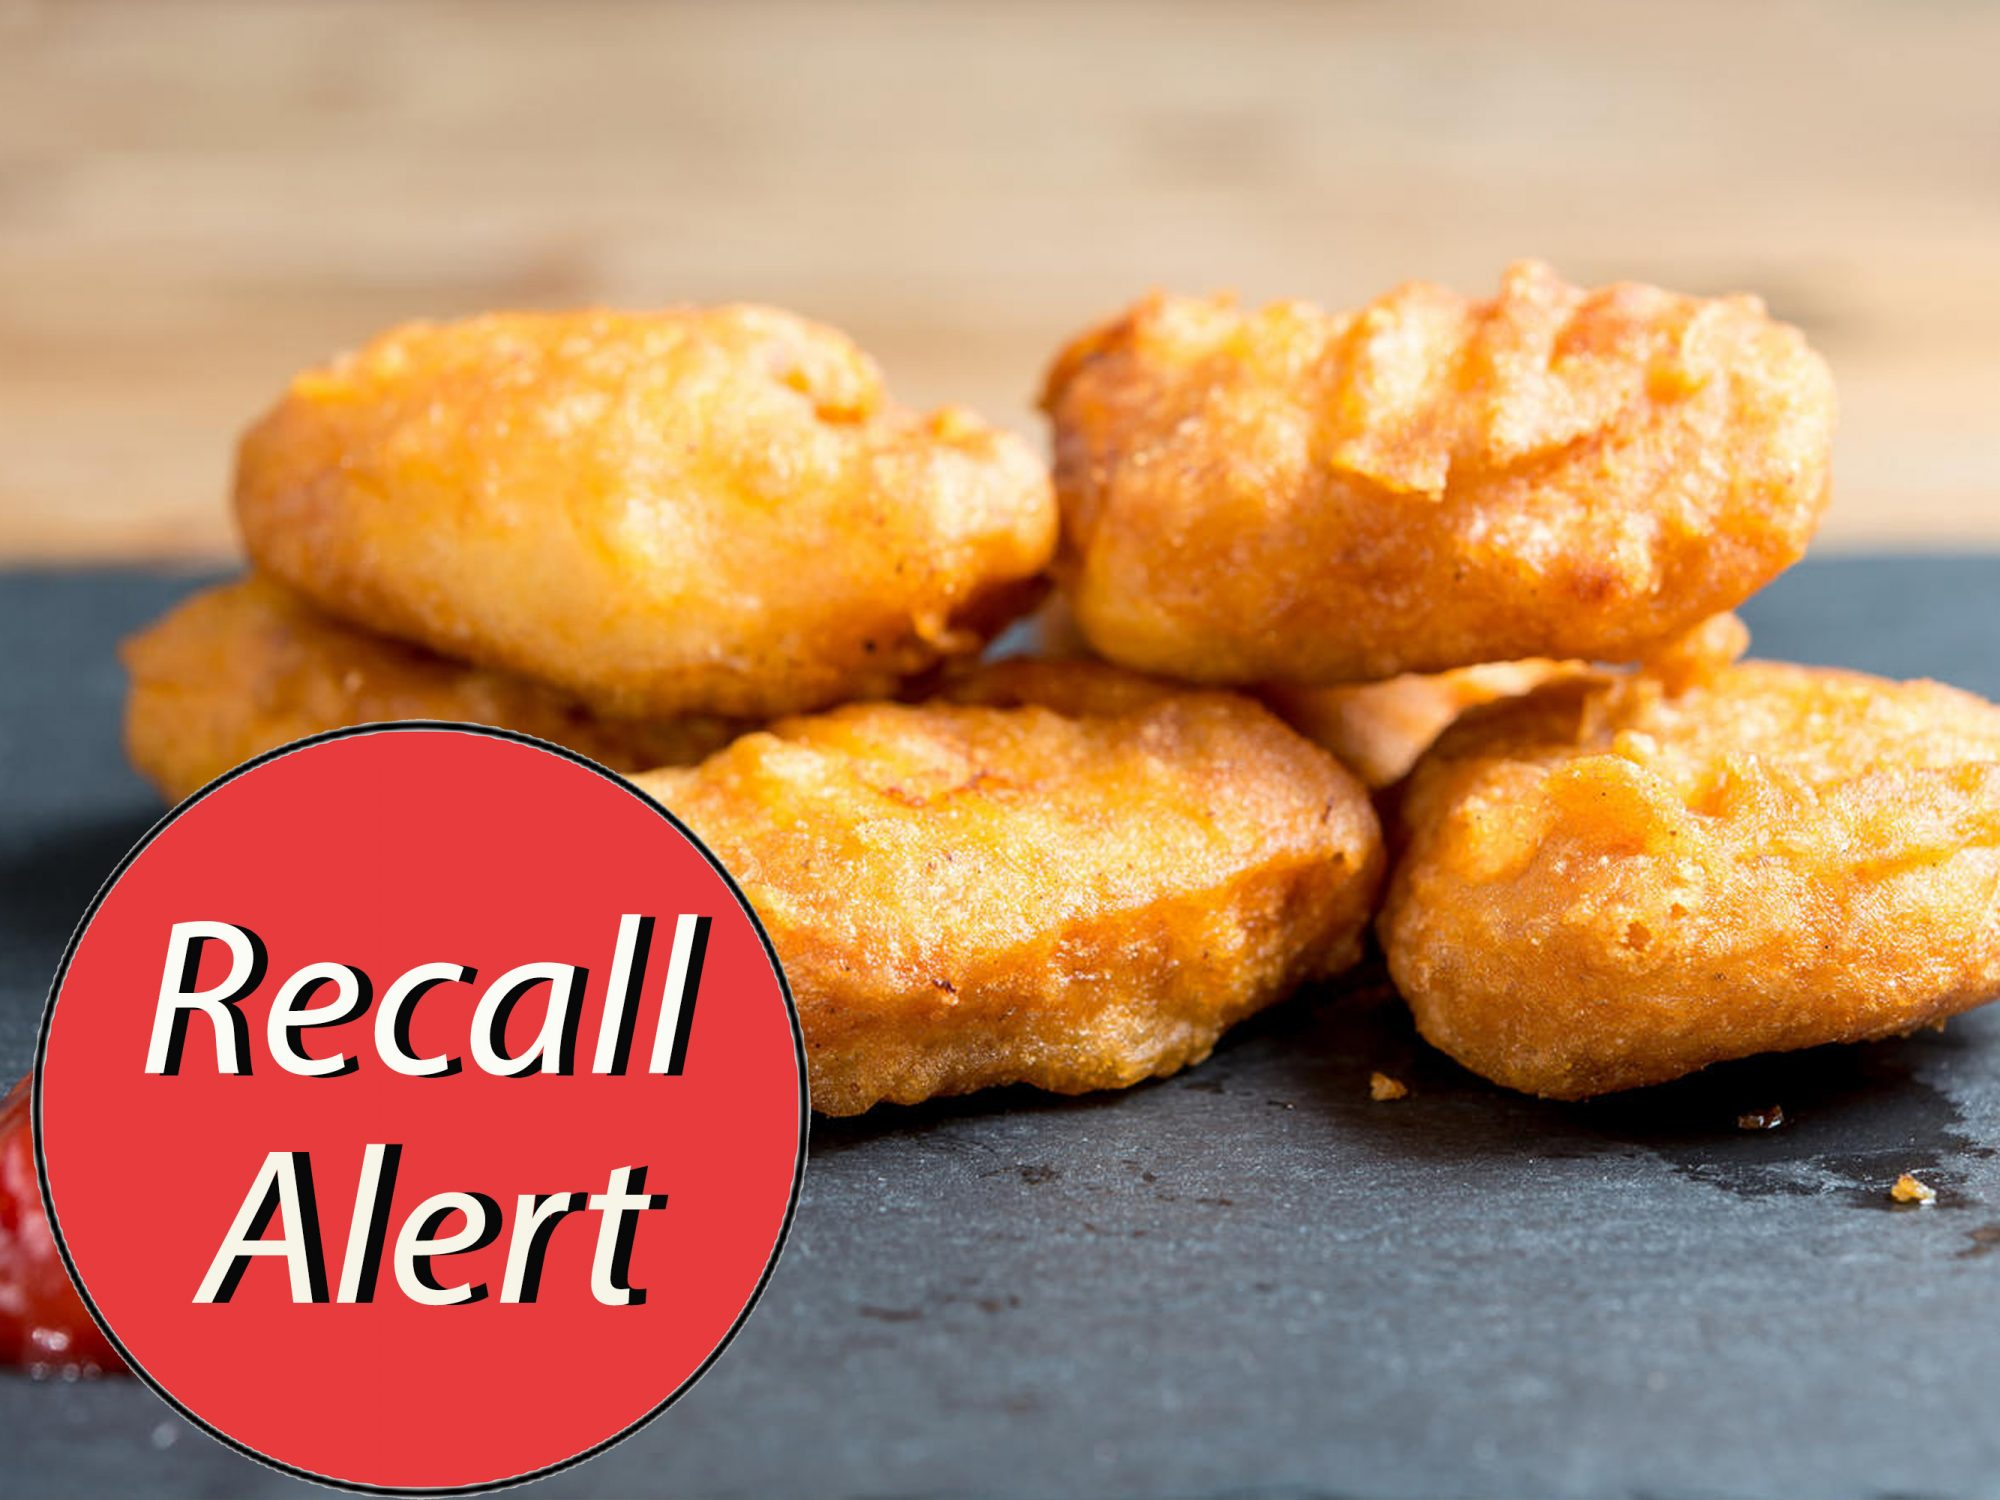 Perdue Recalls Gluten-Free Chicken Nuggets Contaminated With Wood Particles